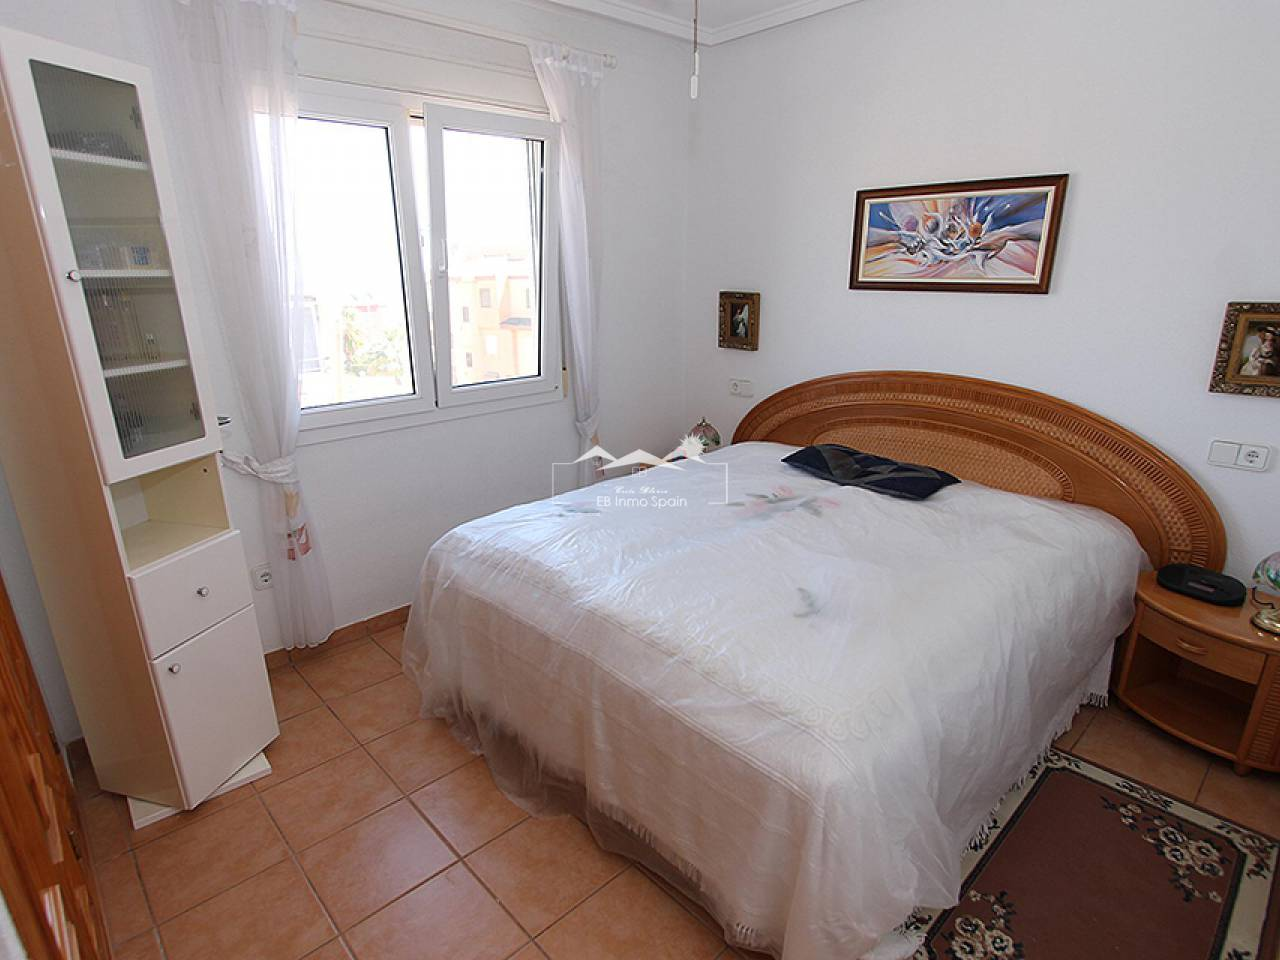 Seconde main - Appartement - Aguas Nuevas